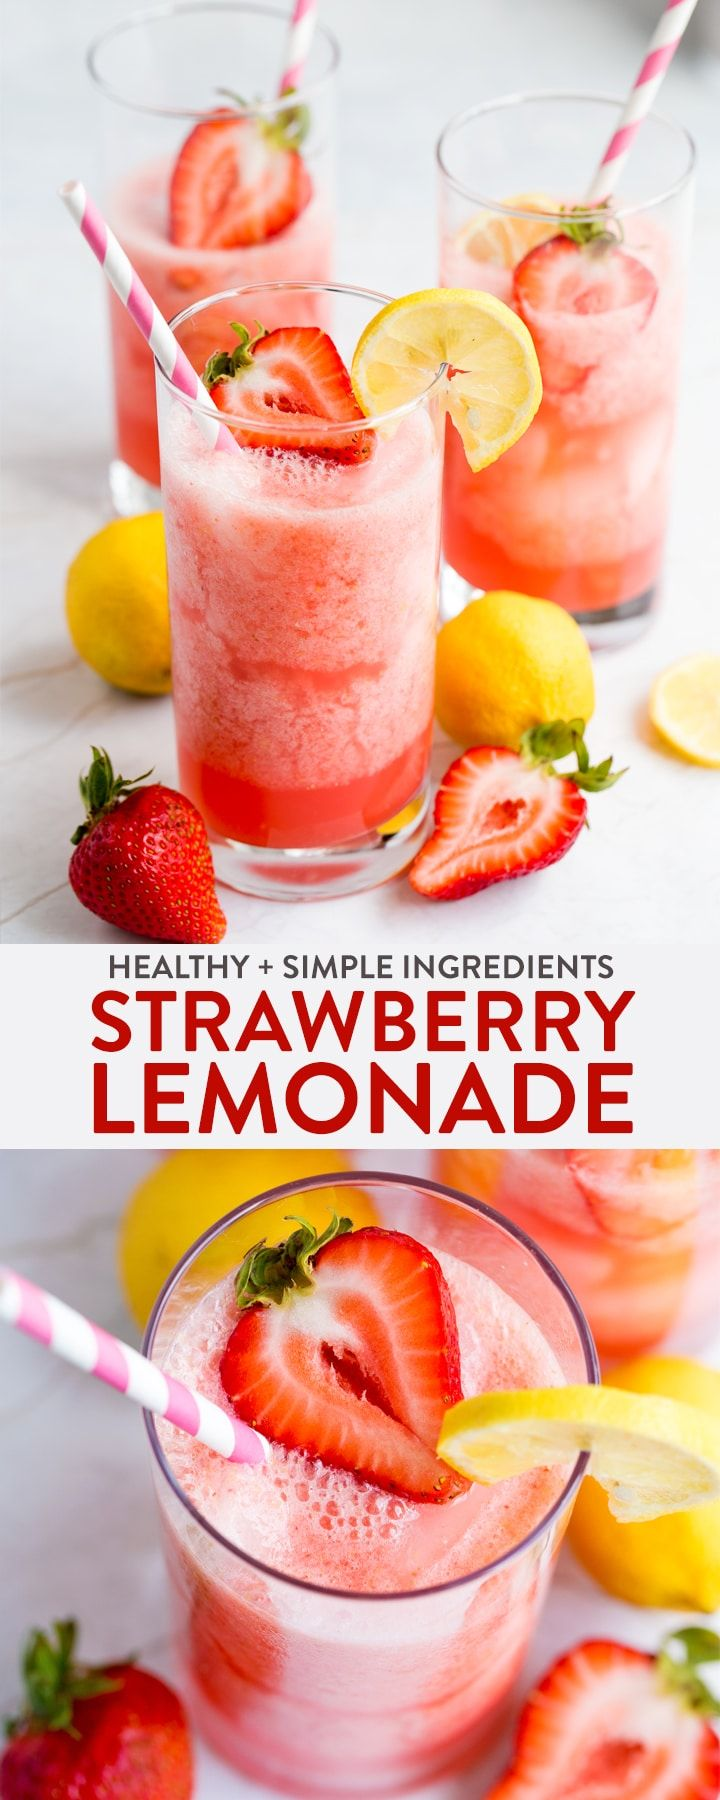 Strawberry Lemonade Recipe | The Bewitchin' Kitchen